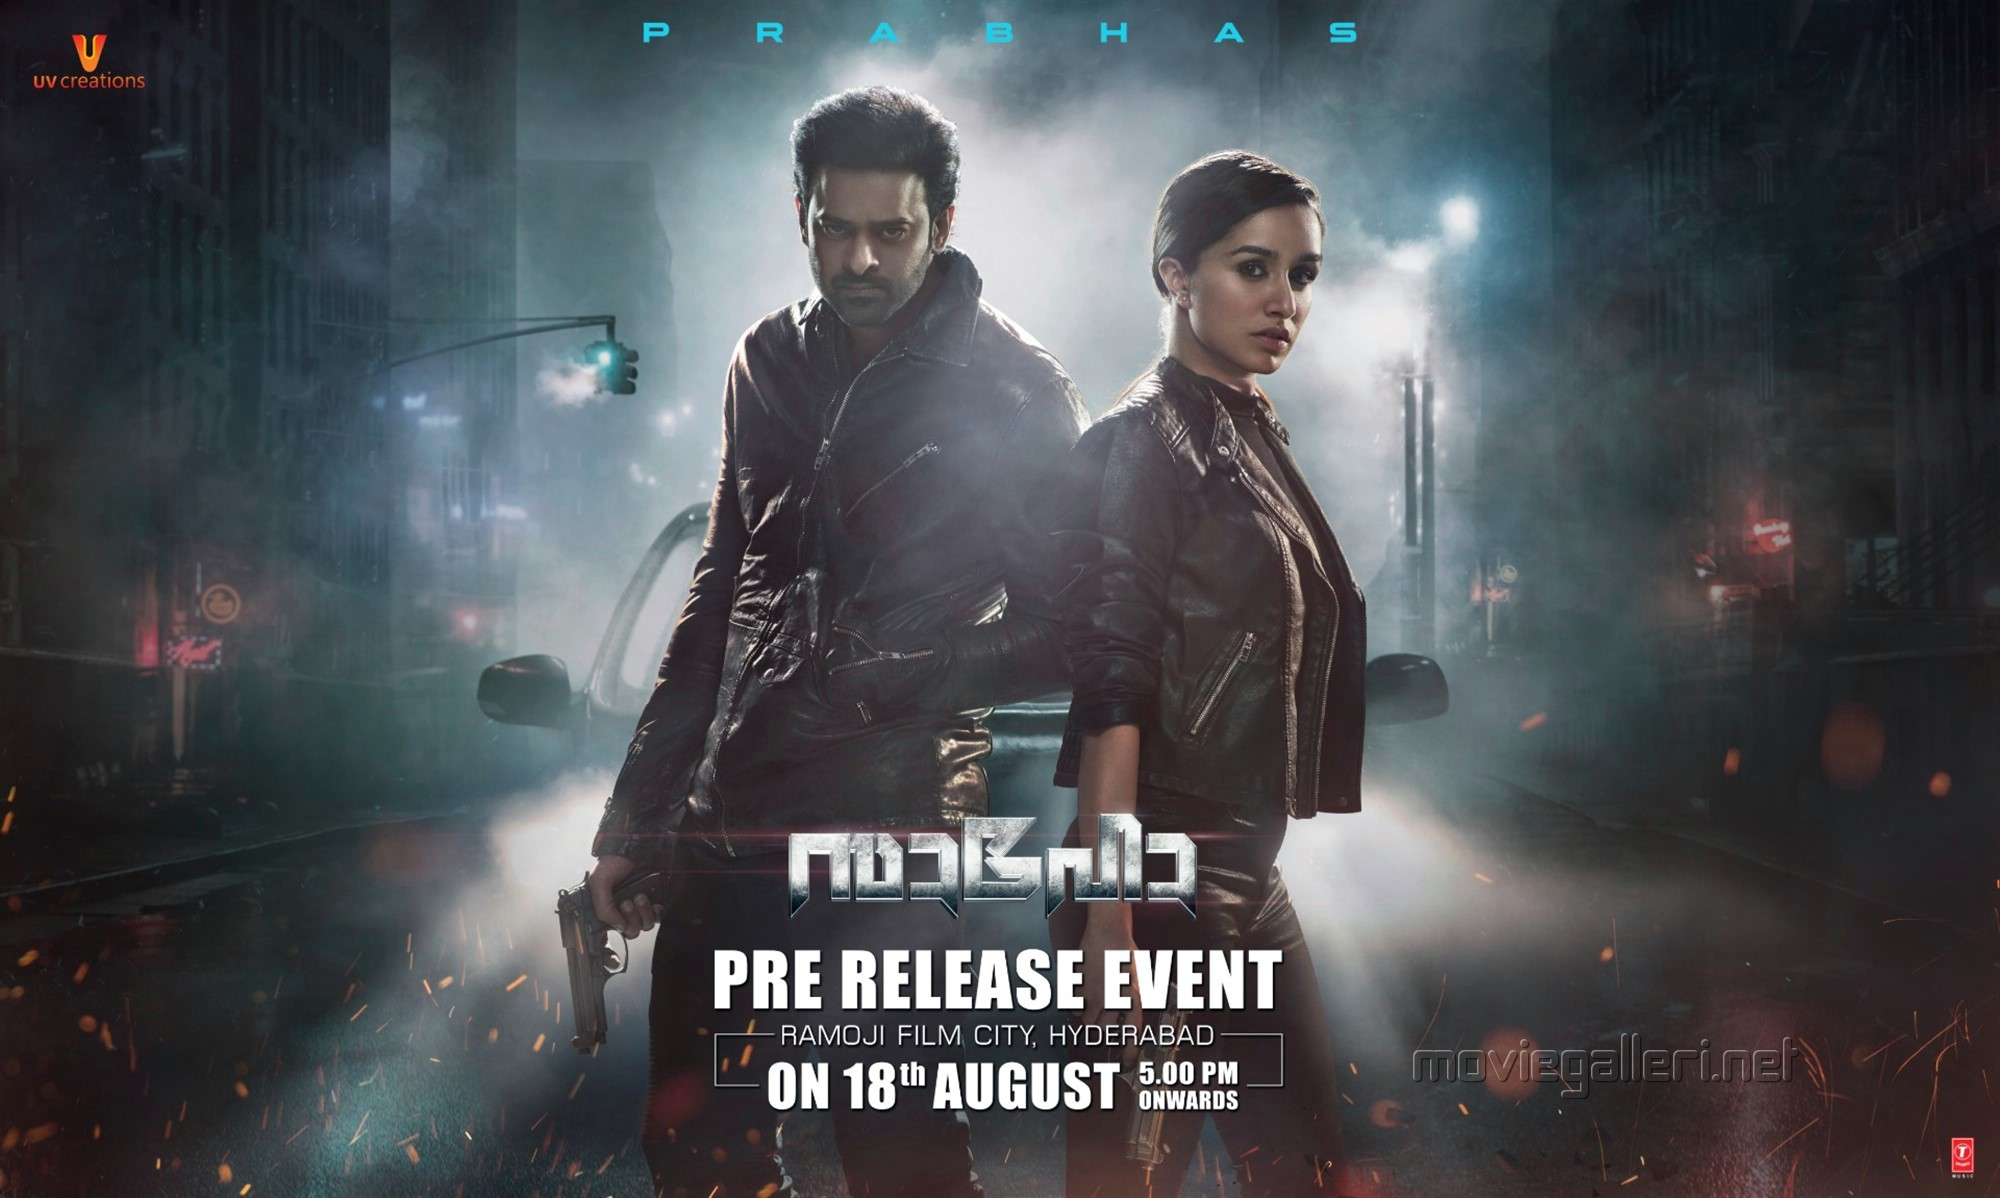 Prabhas Shraddha Kapoor Saaho Movie Pre Release Event on August 18th Wallpapers HD